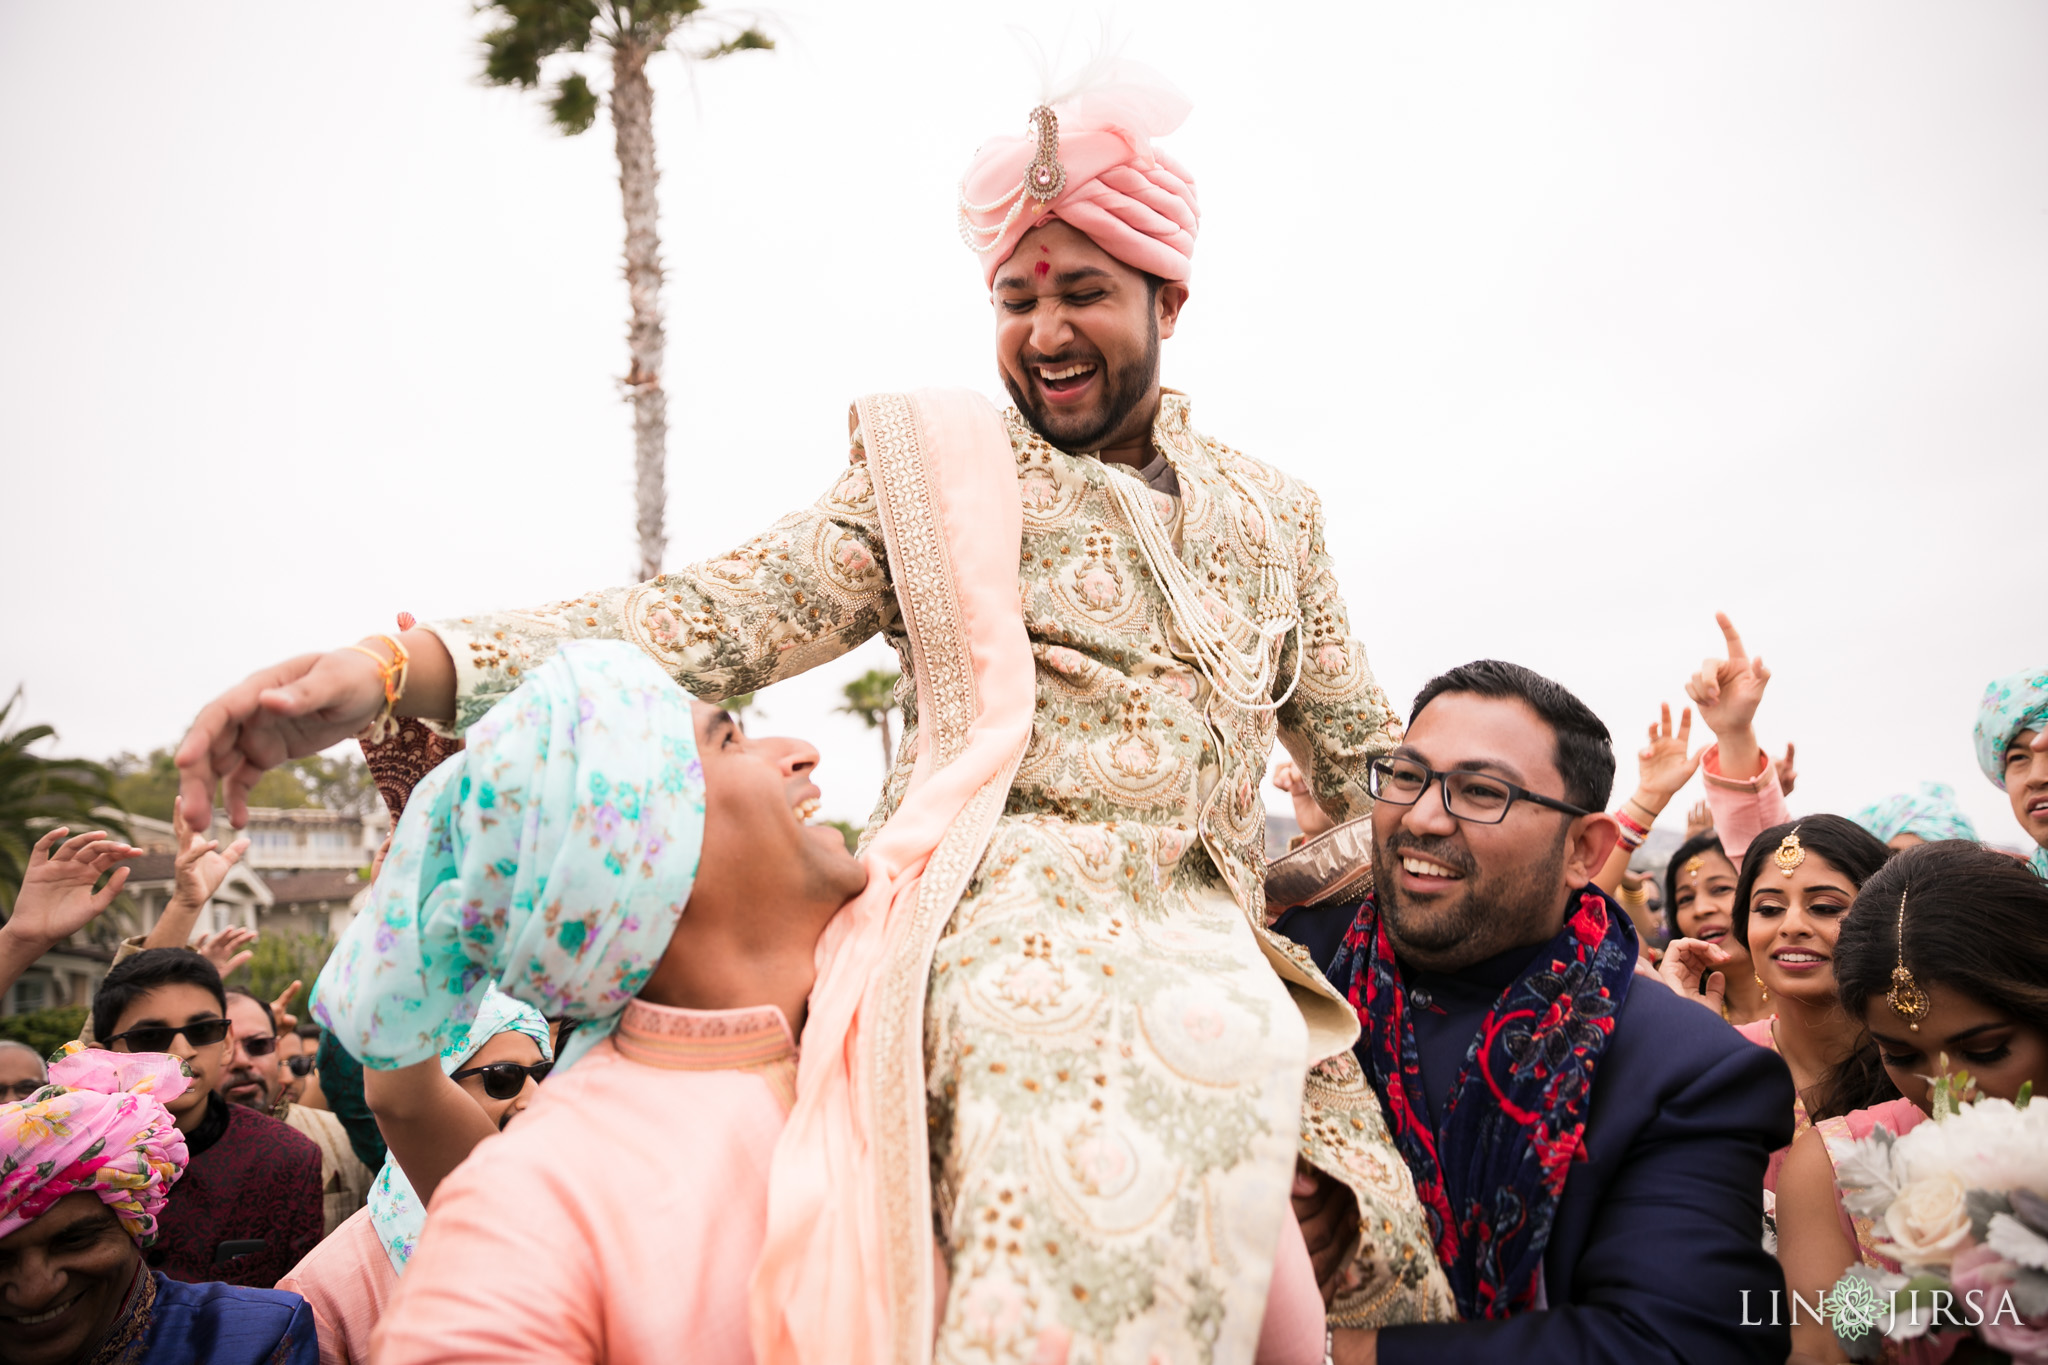 024 montage laguna beach indian baraat wedding photography